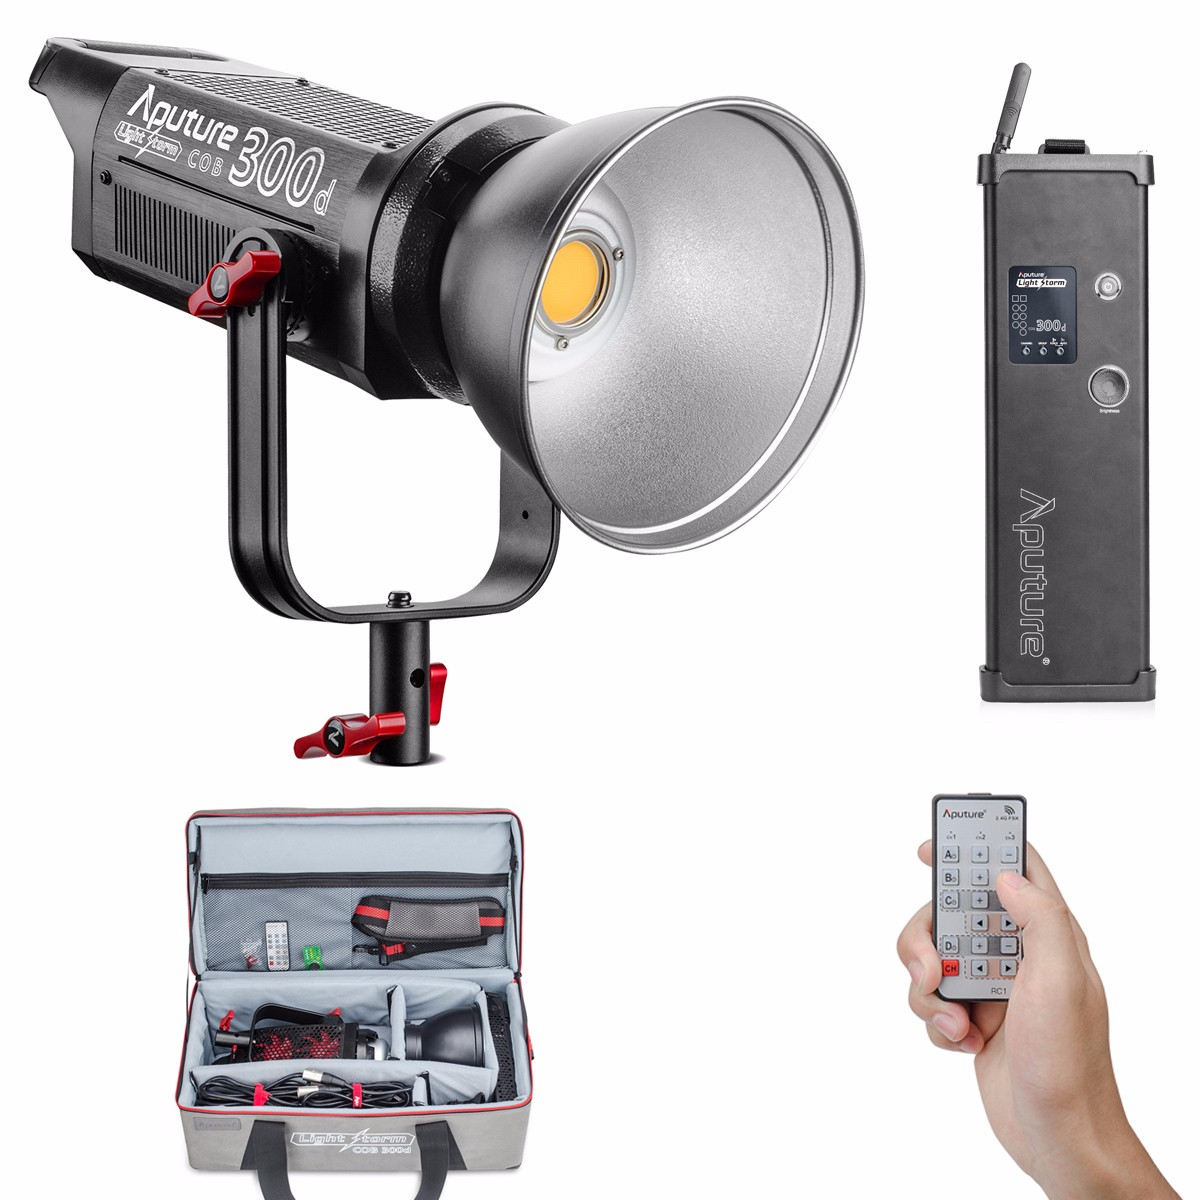 DHL Aputure COB C300D 300D 300W 5500K Daylight Balanced LED Continuous Video Light CRI95+ TLCI96+ 2.4G Remote Control 18dB aputure ls c300d cri 95 tlci 96 48000 lux 0 5m color temperature 5500k for filmmakers 2 4g remote aputure light dome mini